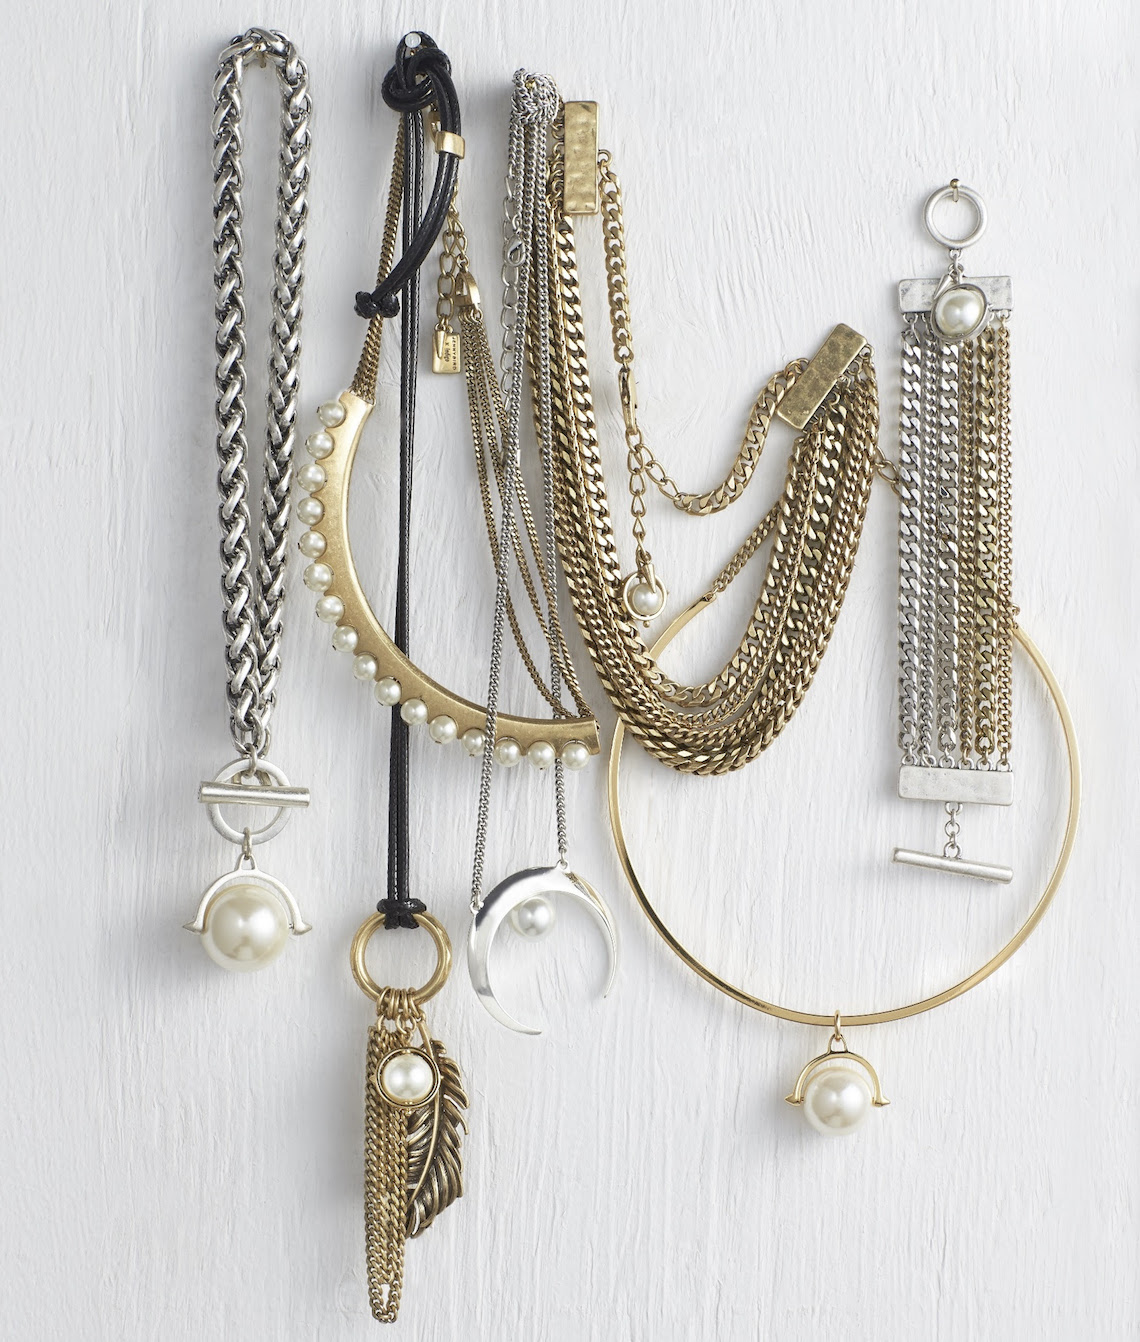 """The Jenny Bird """"Modern Pearl"""" Collection is Now Exclusively Available at Indigo."""